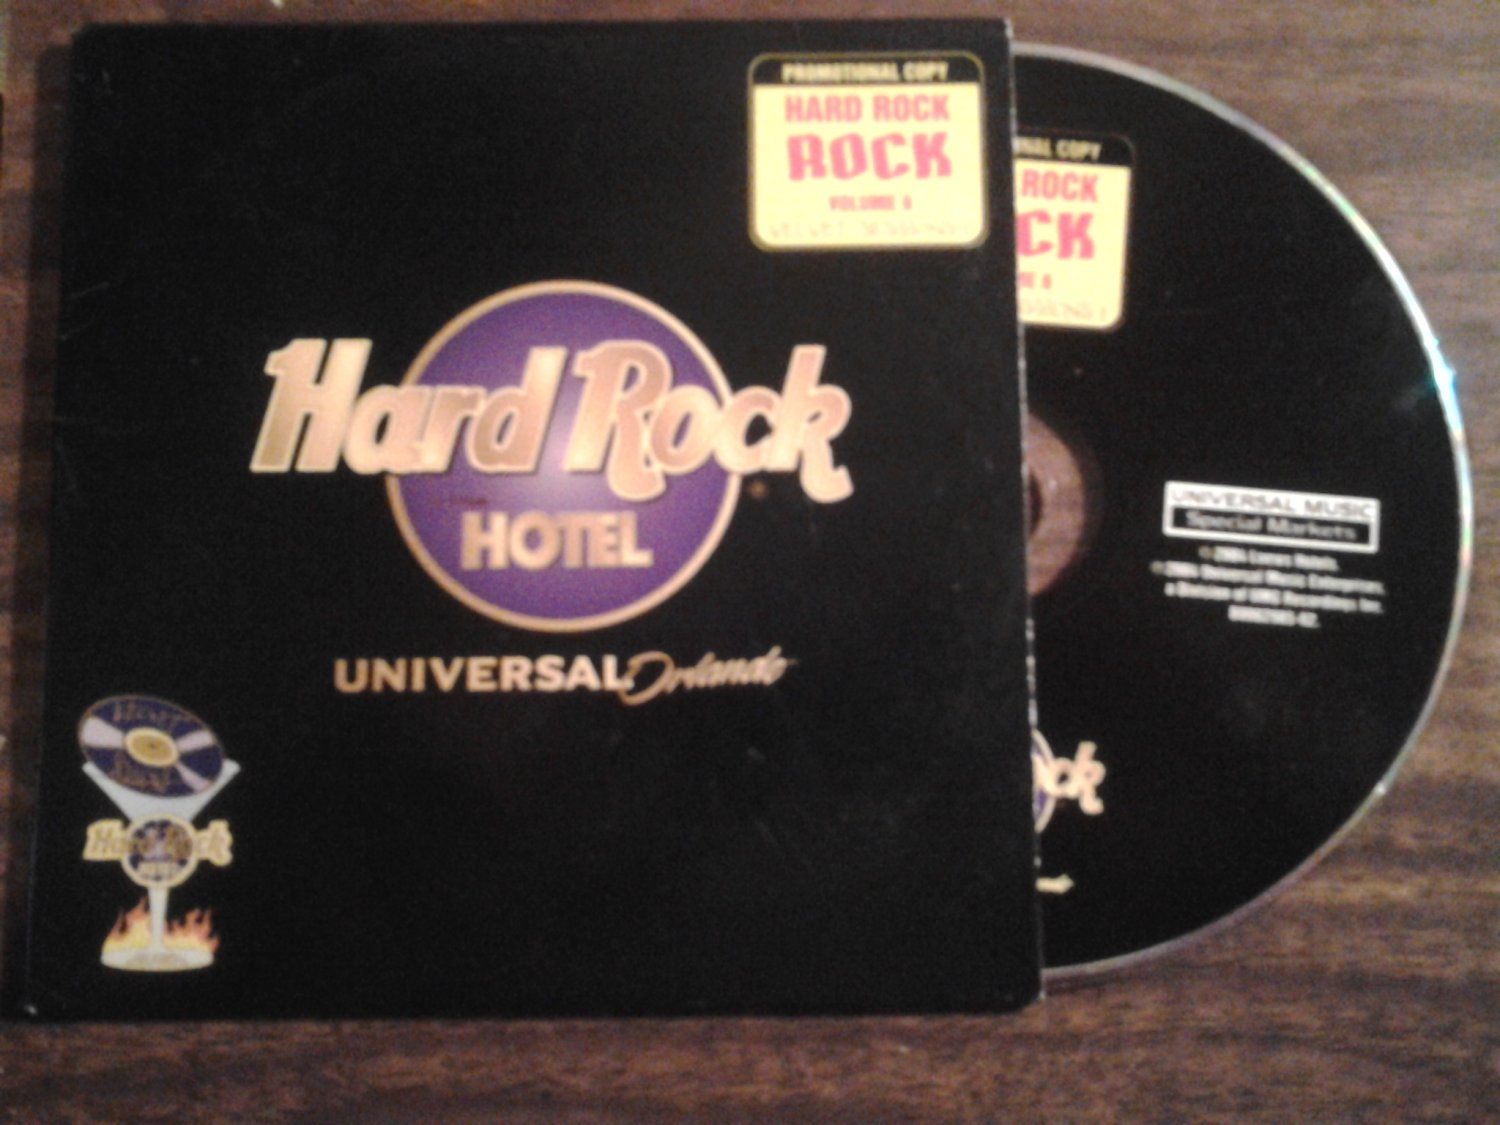 CD Hard Rock Hotel velvet sessIons the fixx loverboy missing persons john cafferty berlin PROMO